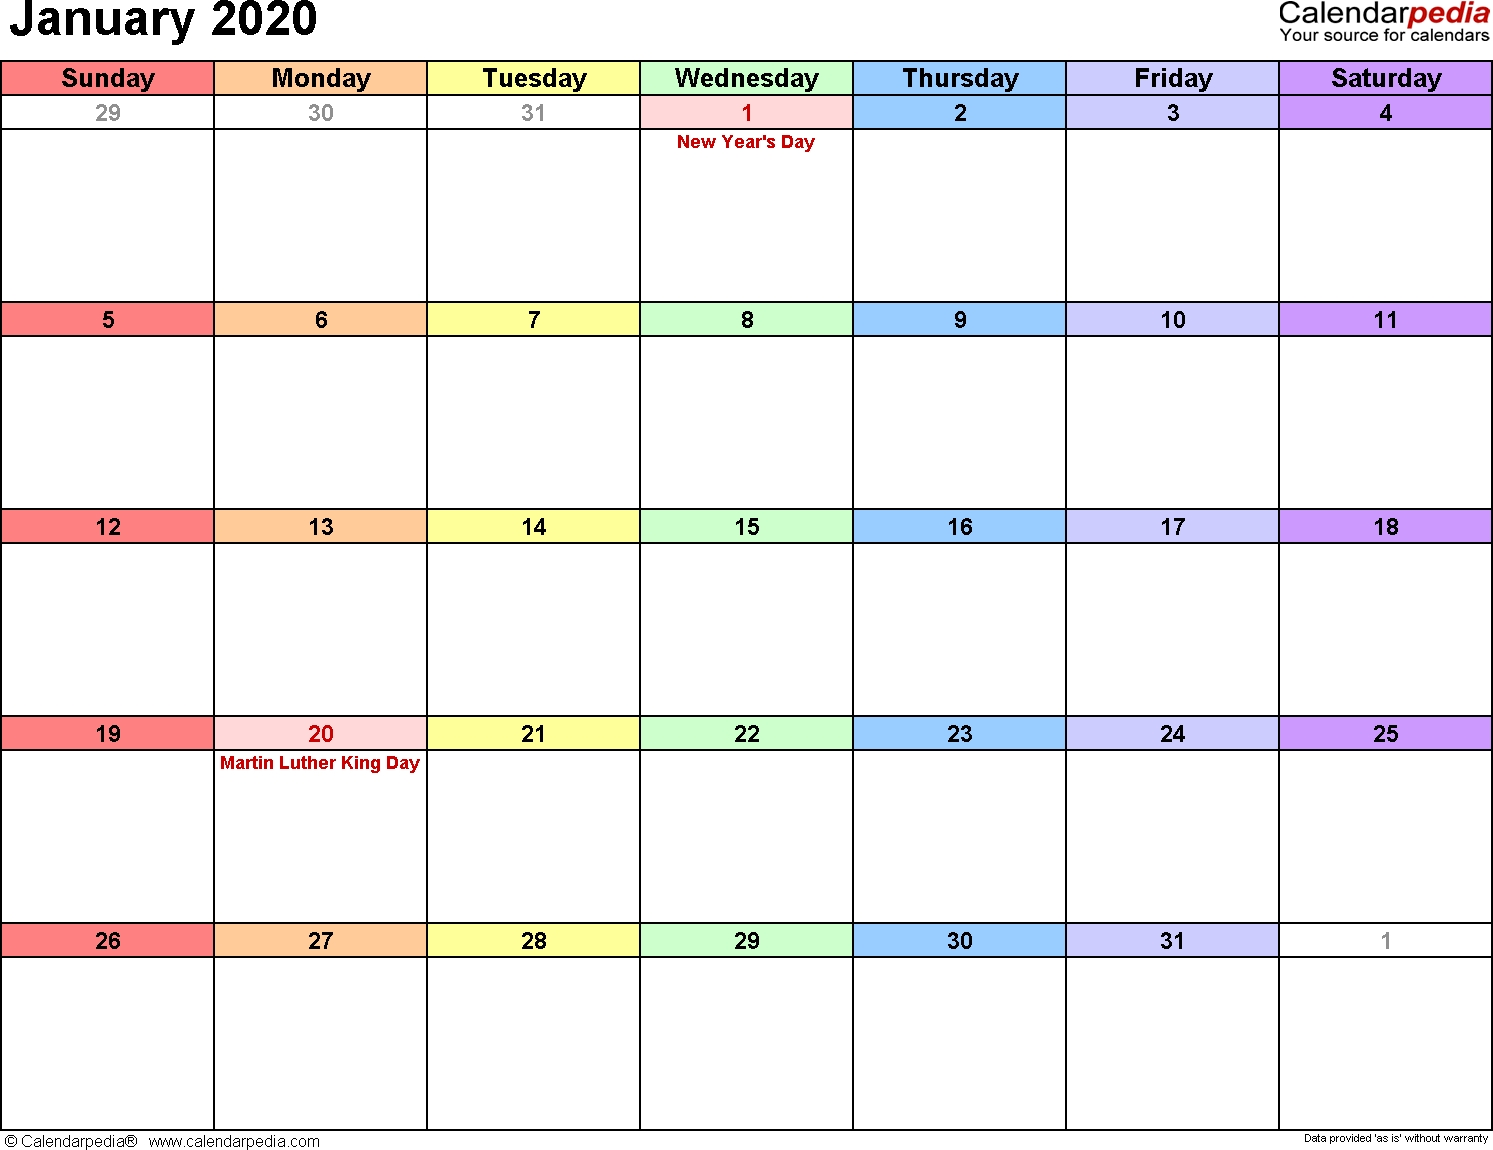 January 2020 Calendars For Word, Excel & Pdf-January 2020 Calendar Download